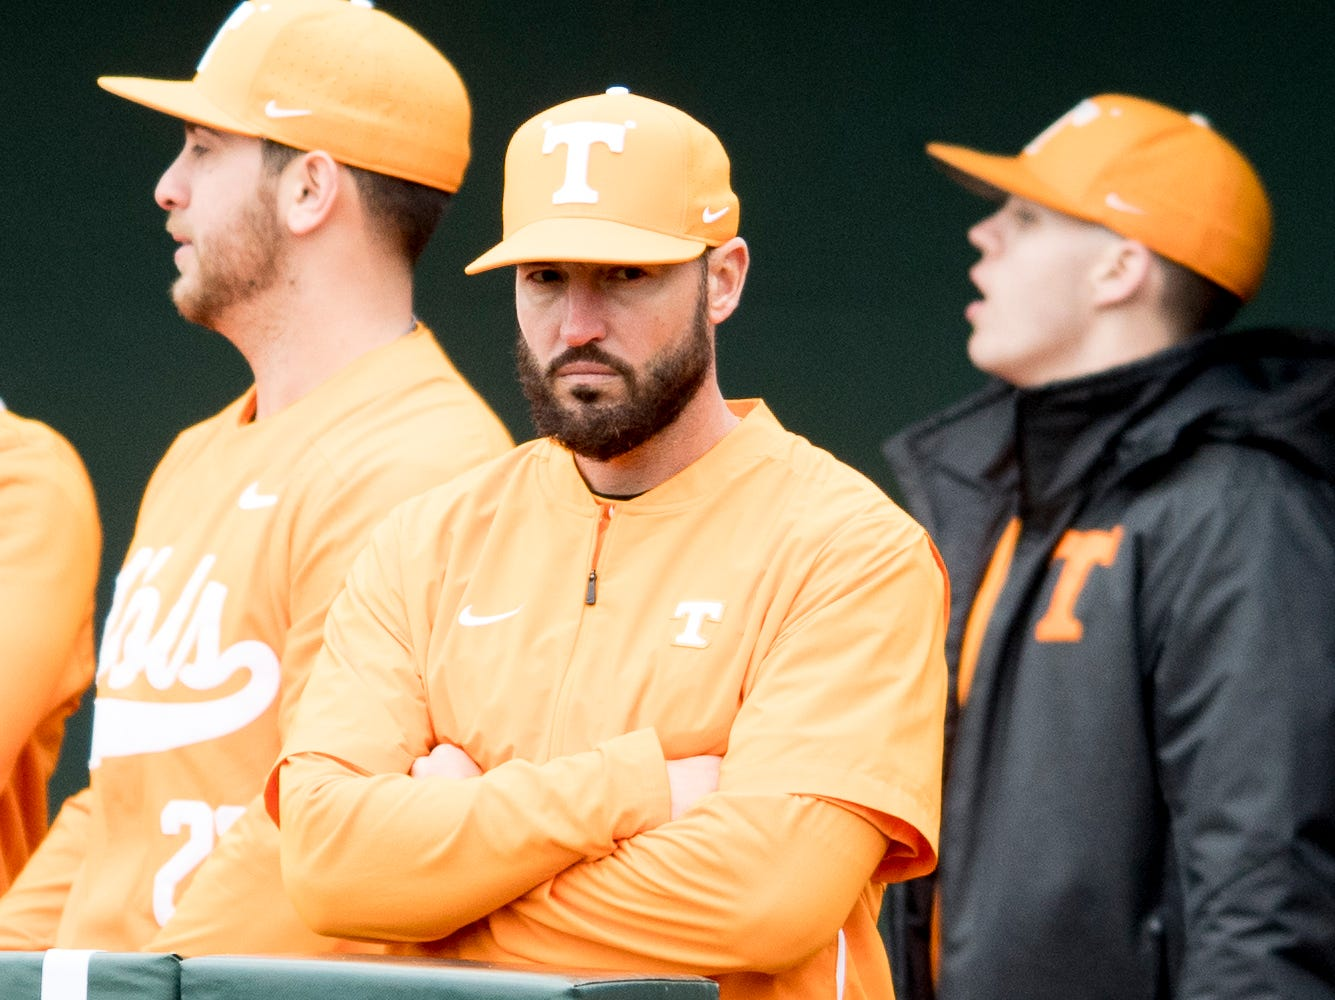 Tennessee Head Coach Tony Vitello eyes the game during a Tennessee baseball home opener game against Appalachian State at Lindsey Nelson Stadium in Knoxville, Tennessee on Saturday, February 16, 2019.